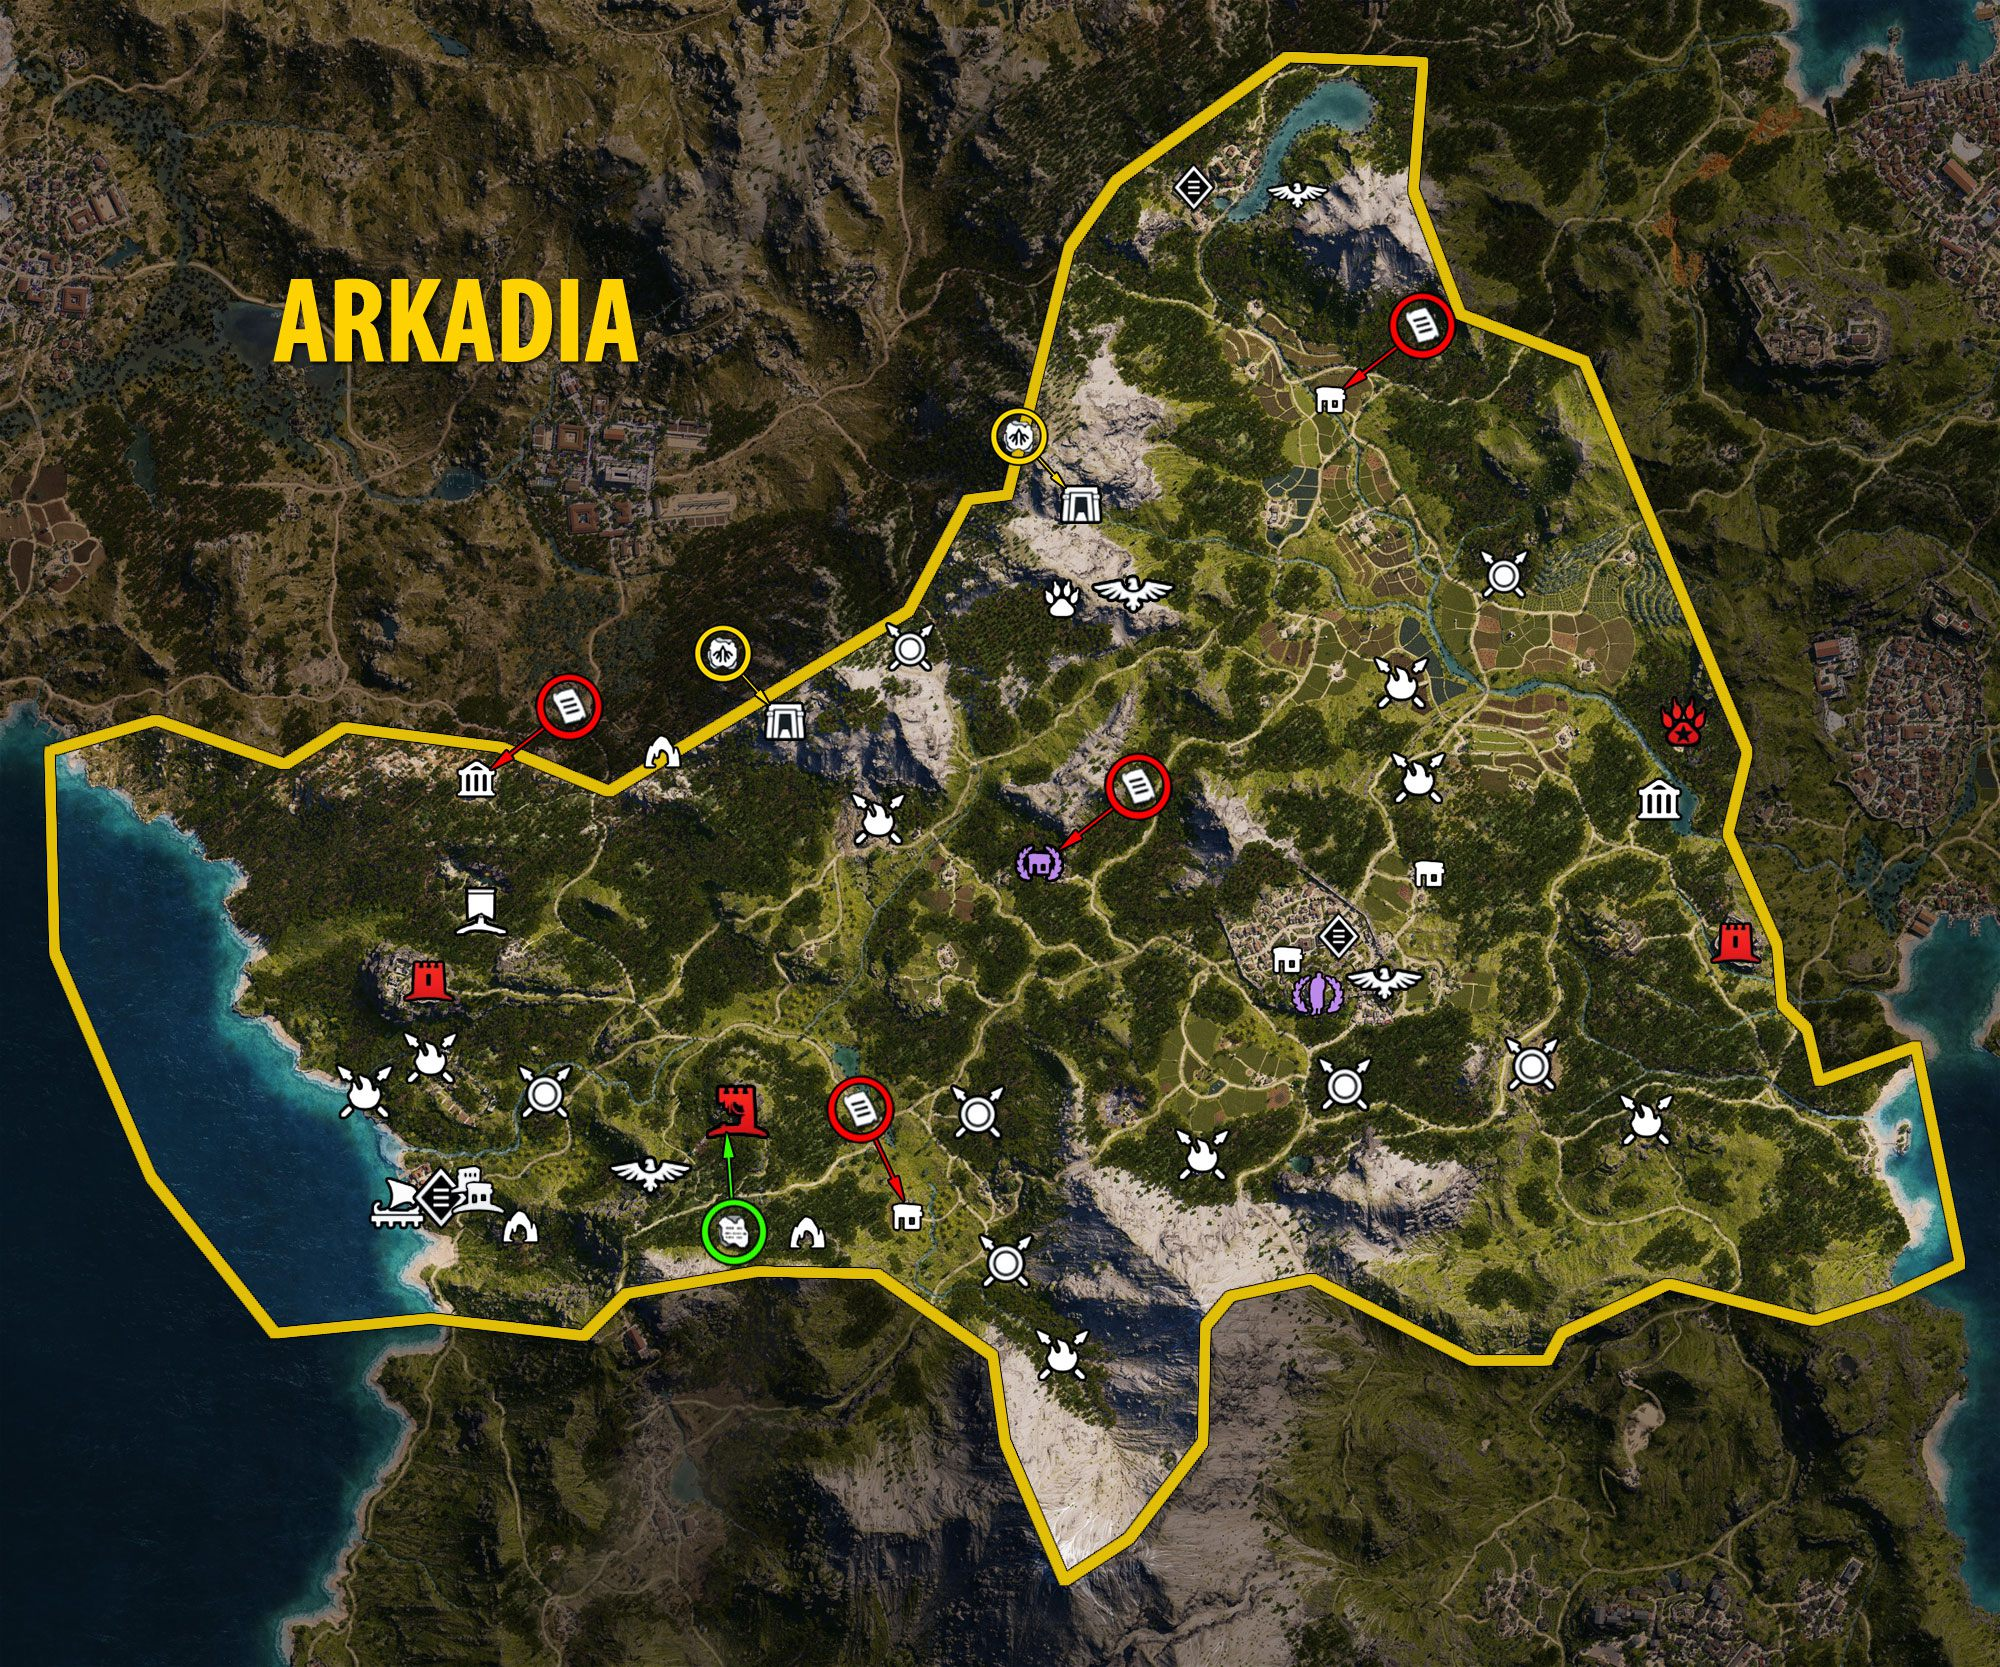 Mapa Arkadii - Assassin's Creed Odyssey